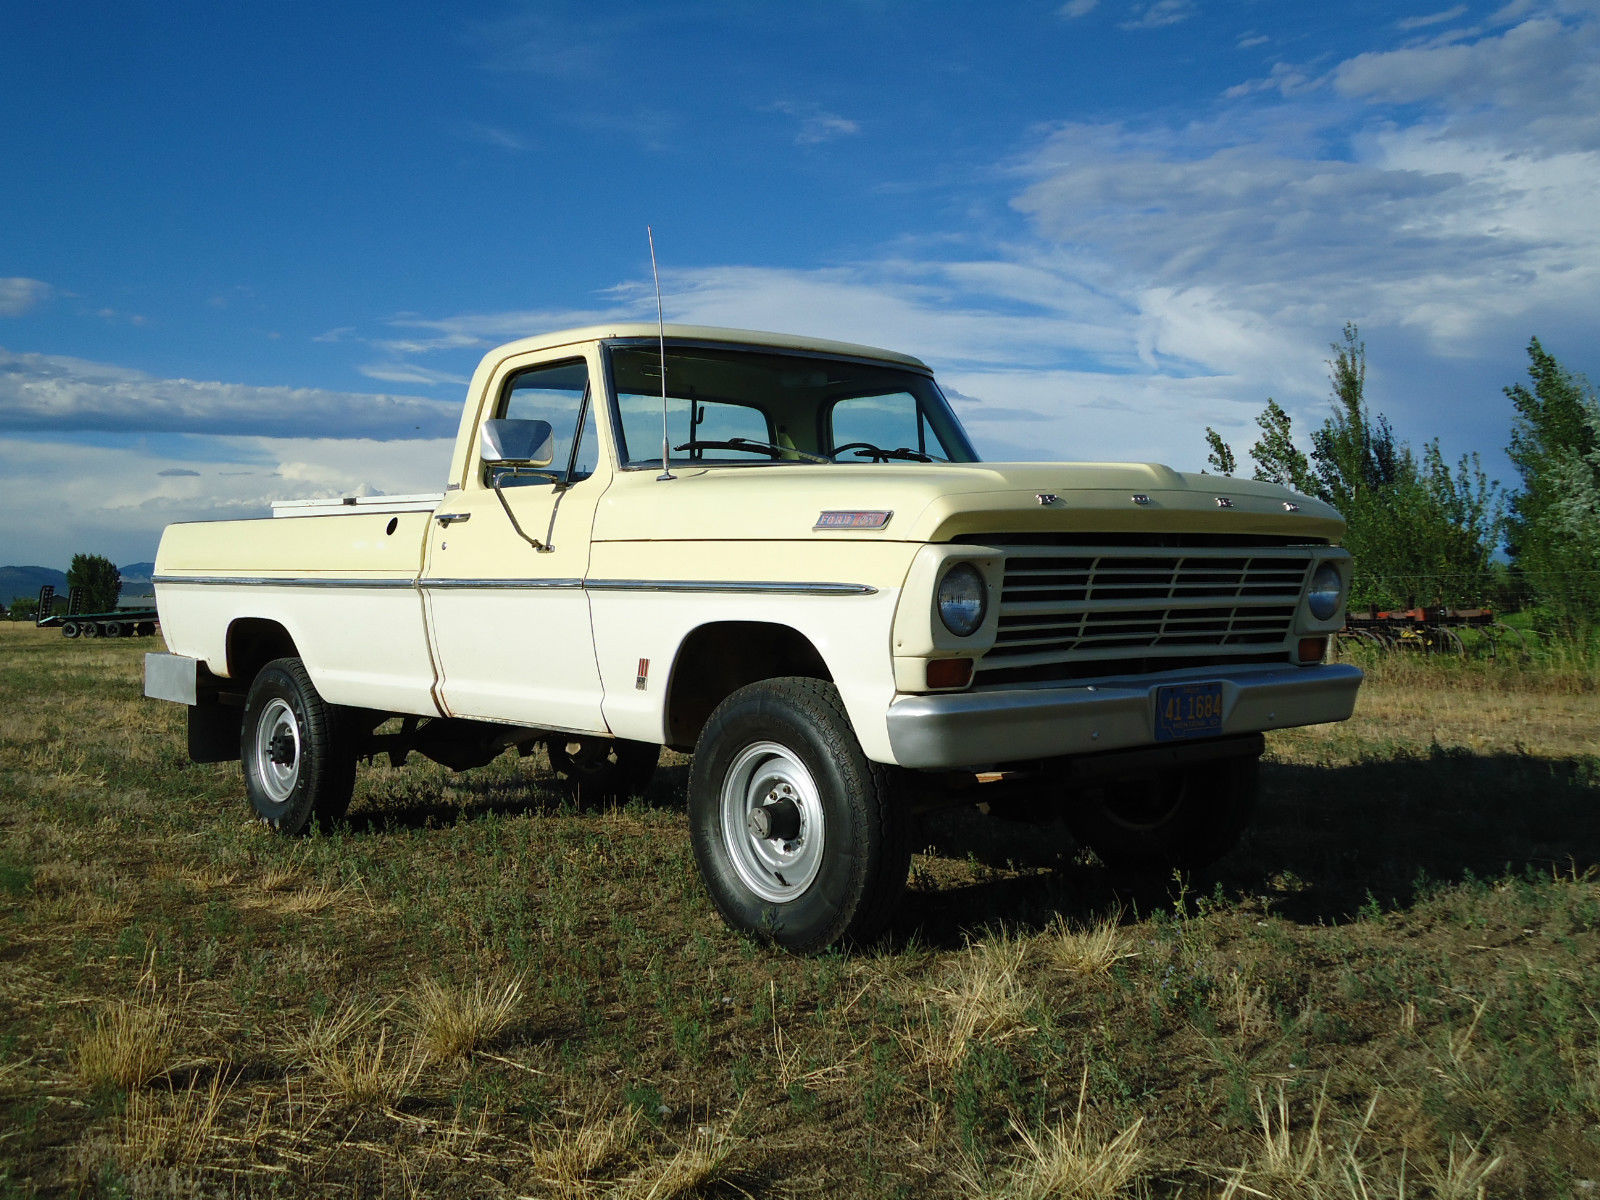 All American Classic Cars: 1967 Ford F-250 4-WD Pickup Truck  All American Cl...